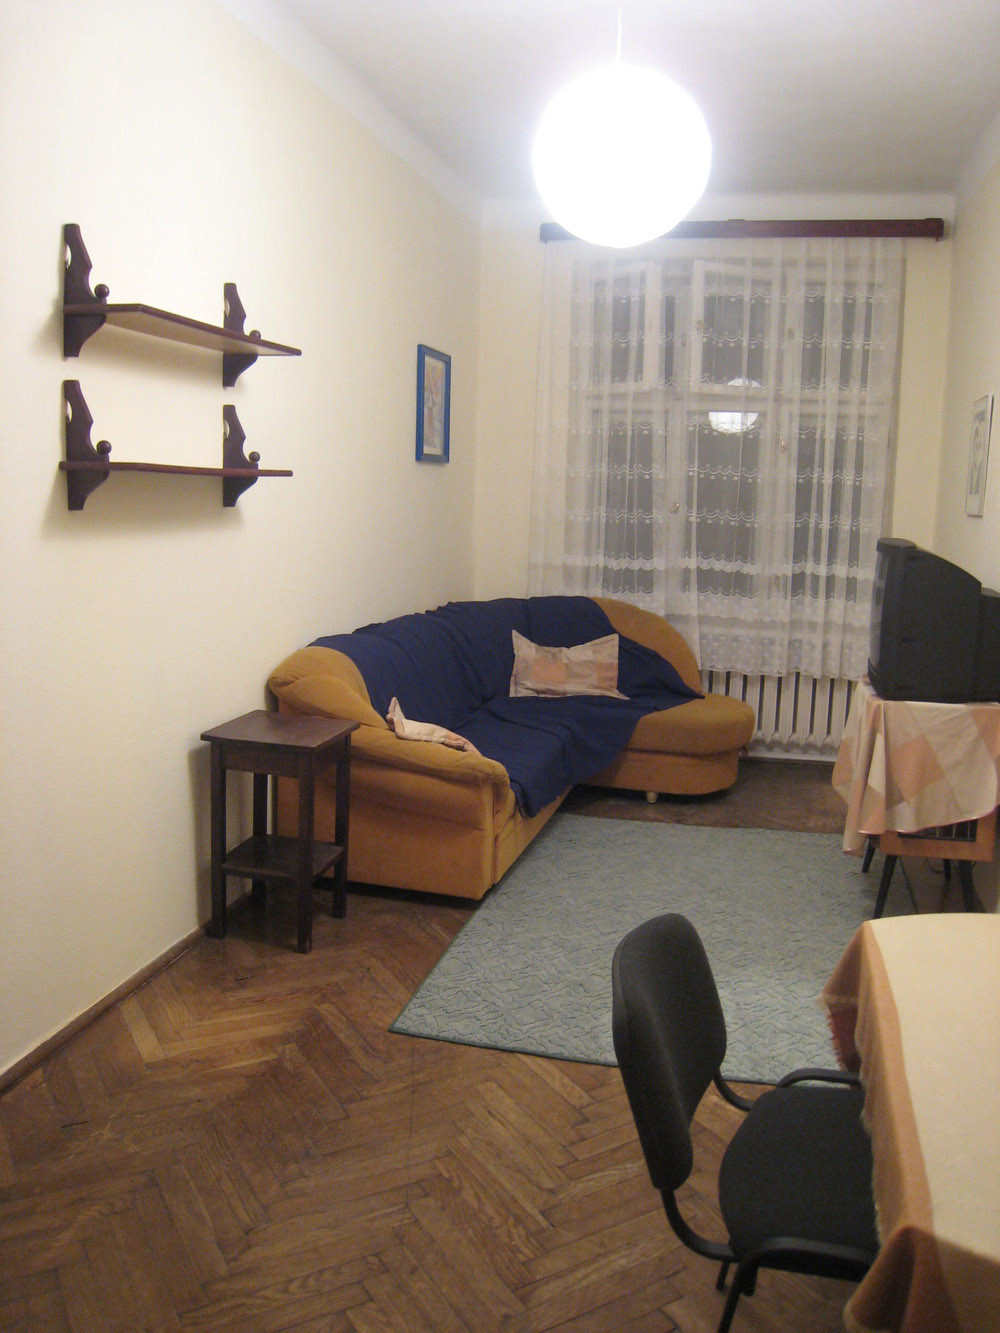 kitchen for rent outside grill one room but quite big flat 40m2 with to from now no